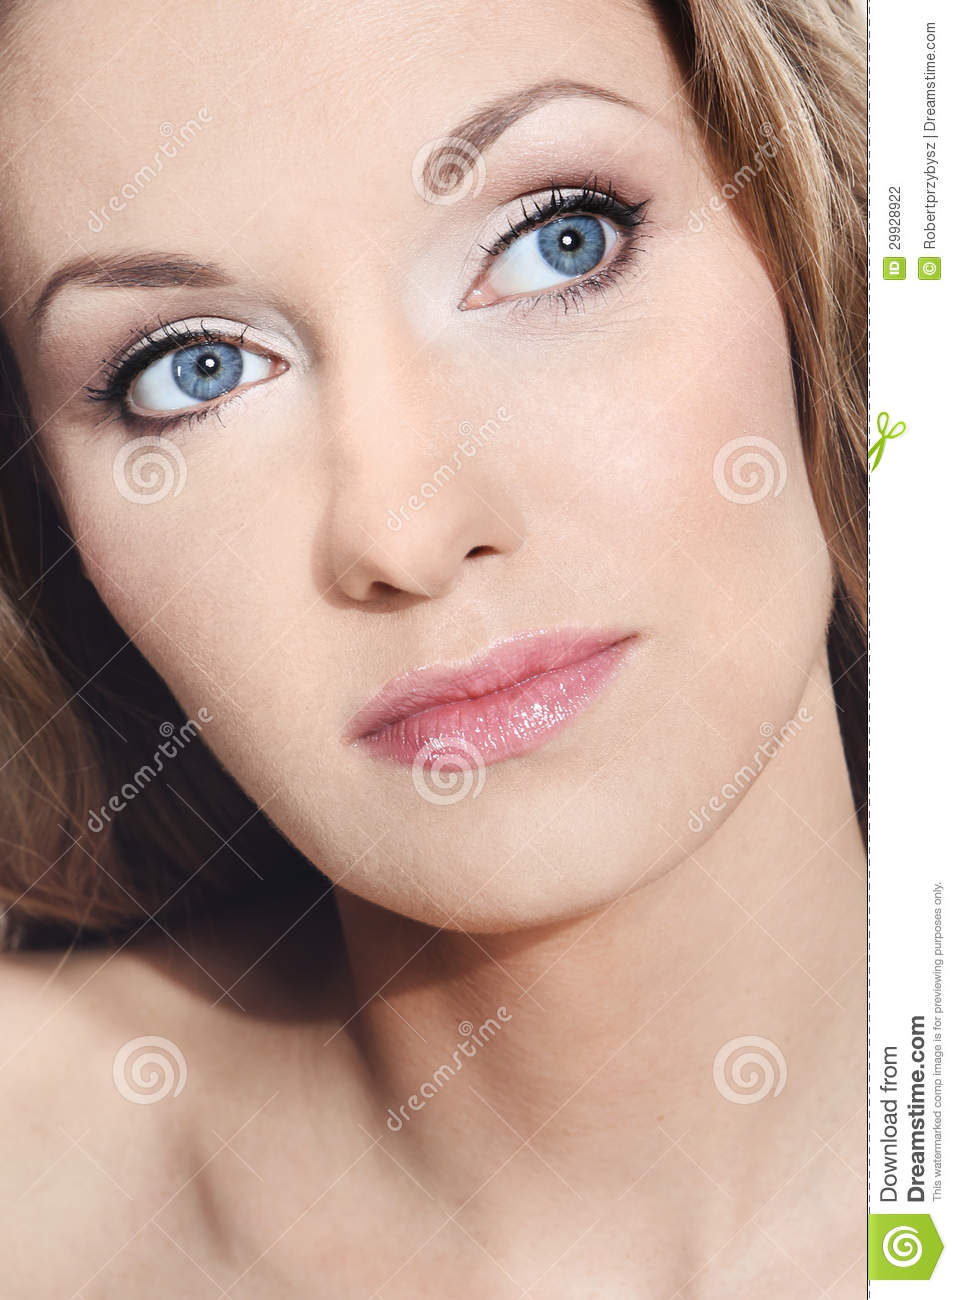 Very Beautiful Blond Teen Girl With: Very Beautiful Girl With Natural Beauty Stock Photography